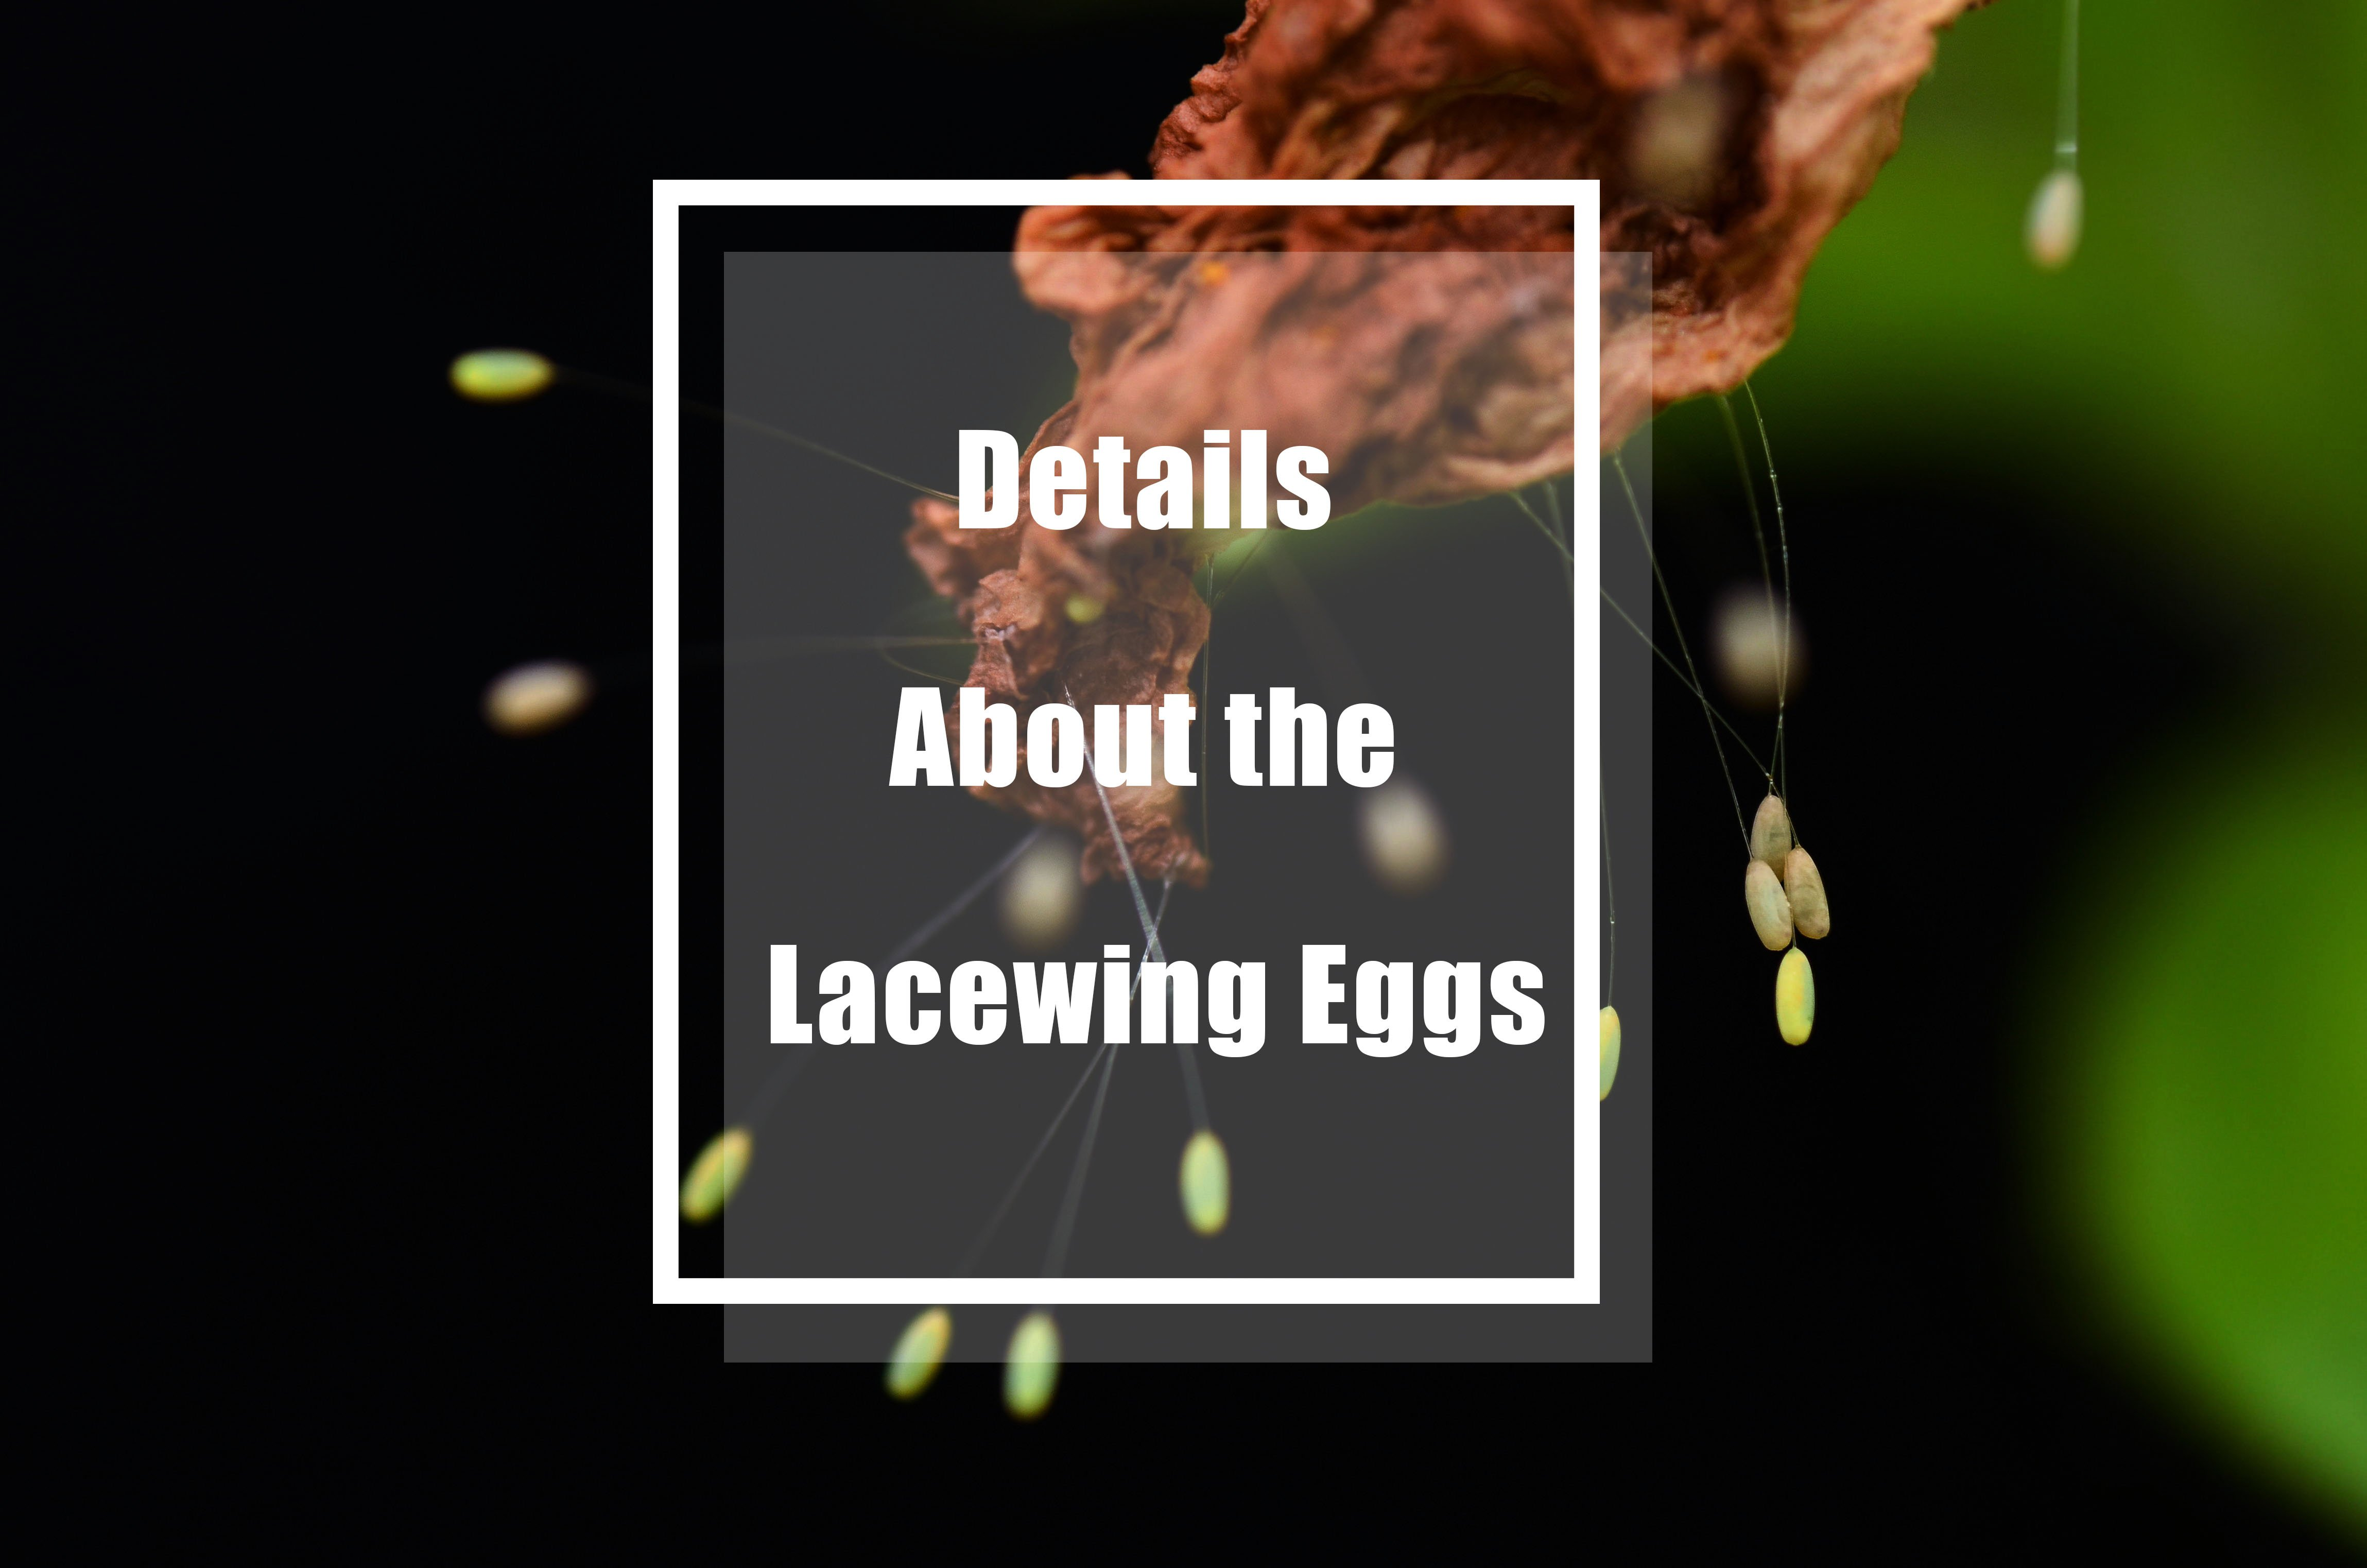 Lacewing eggs